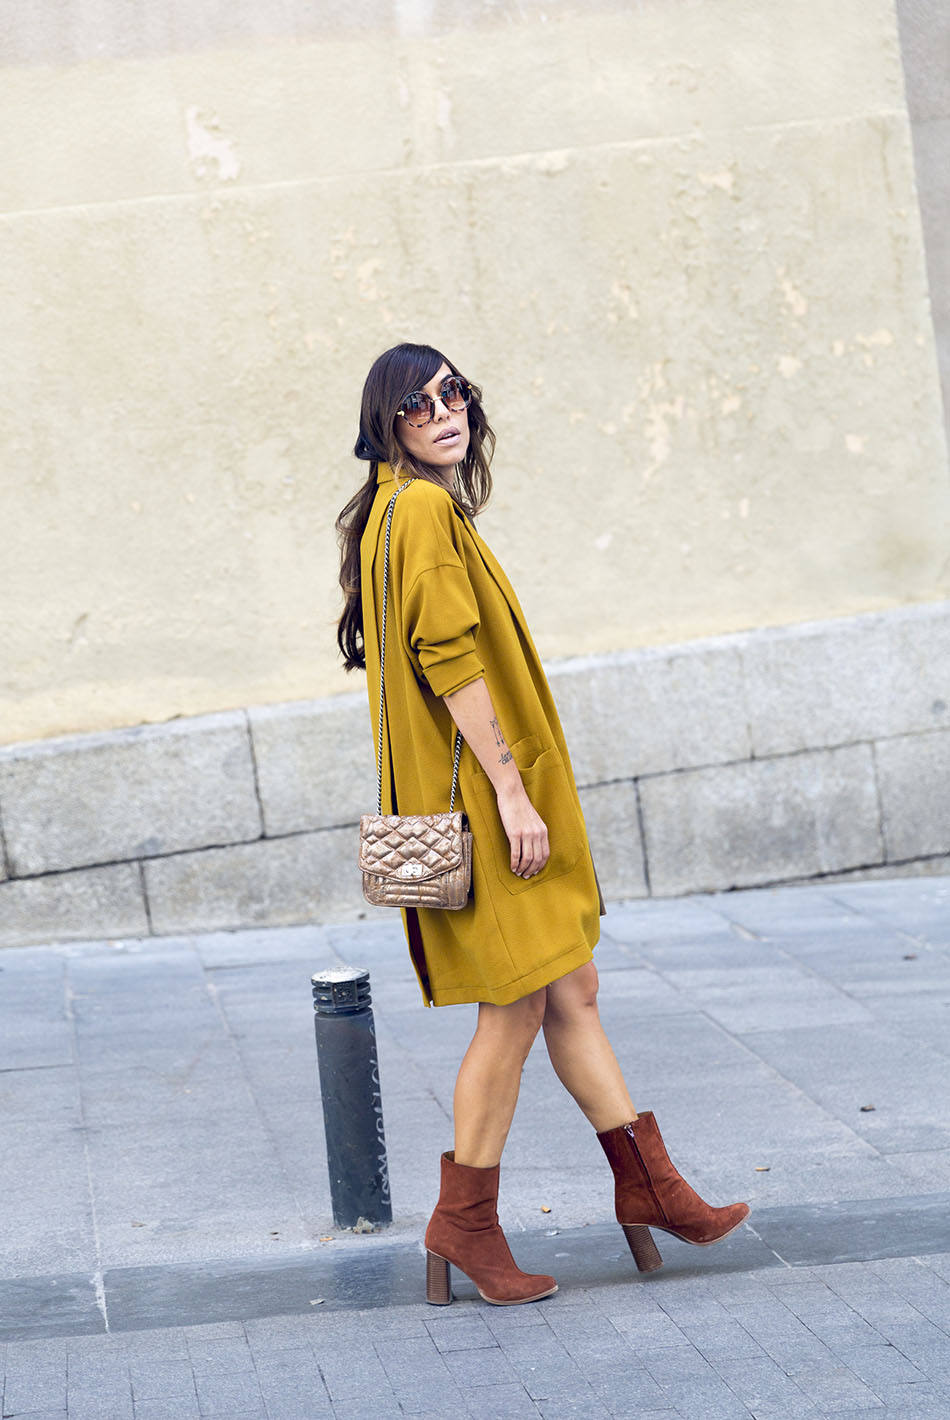 street-style-october-2016-outfits-review-barbara-crespo-03